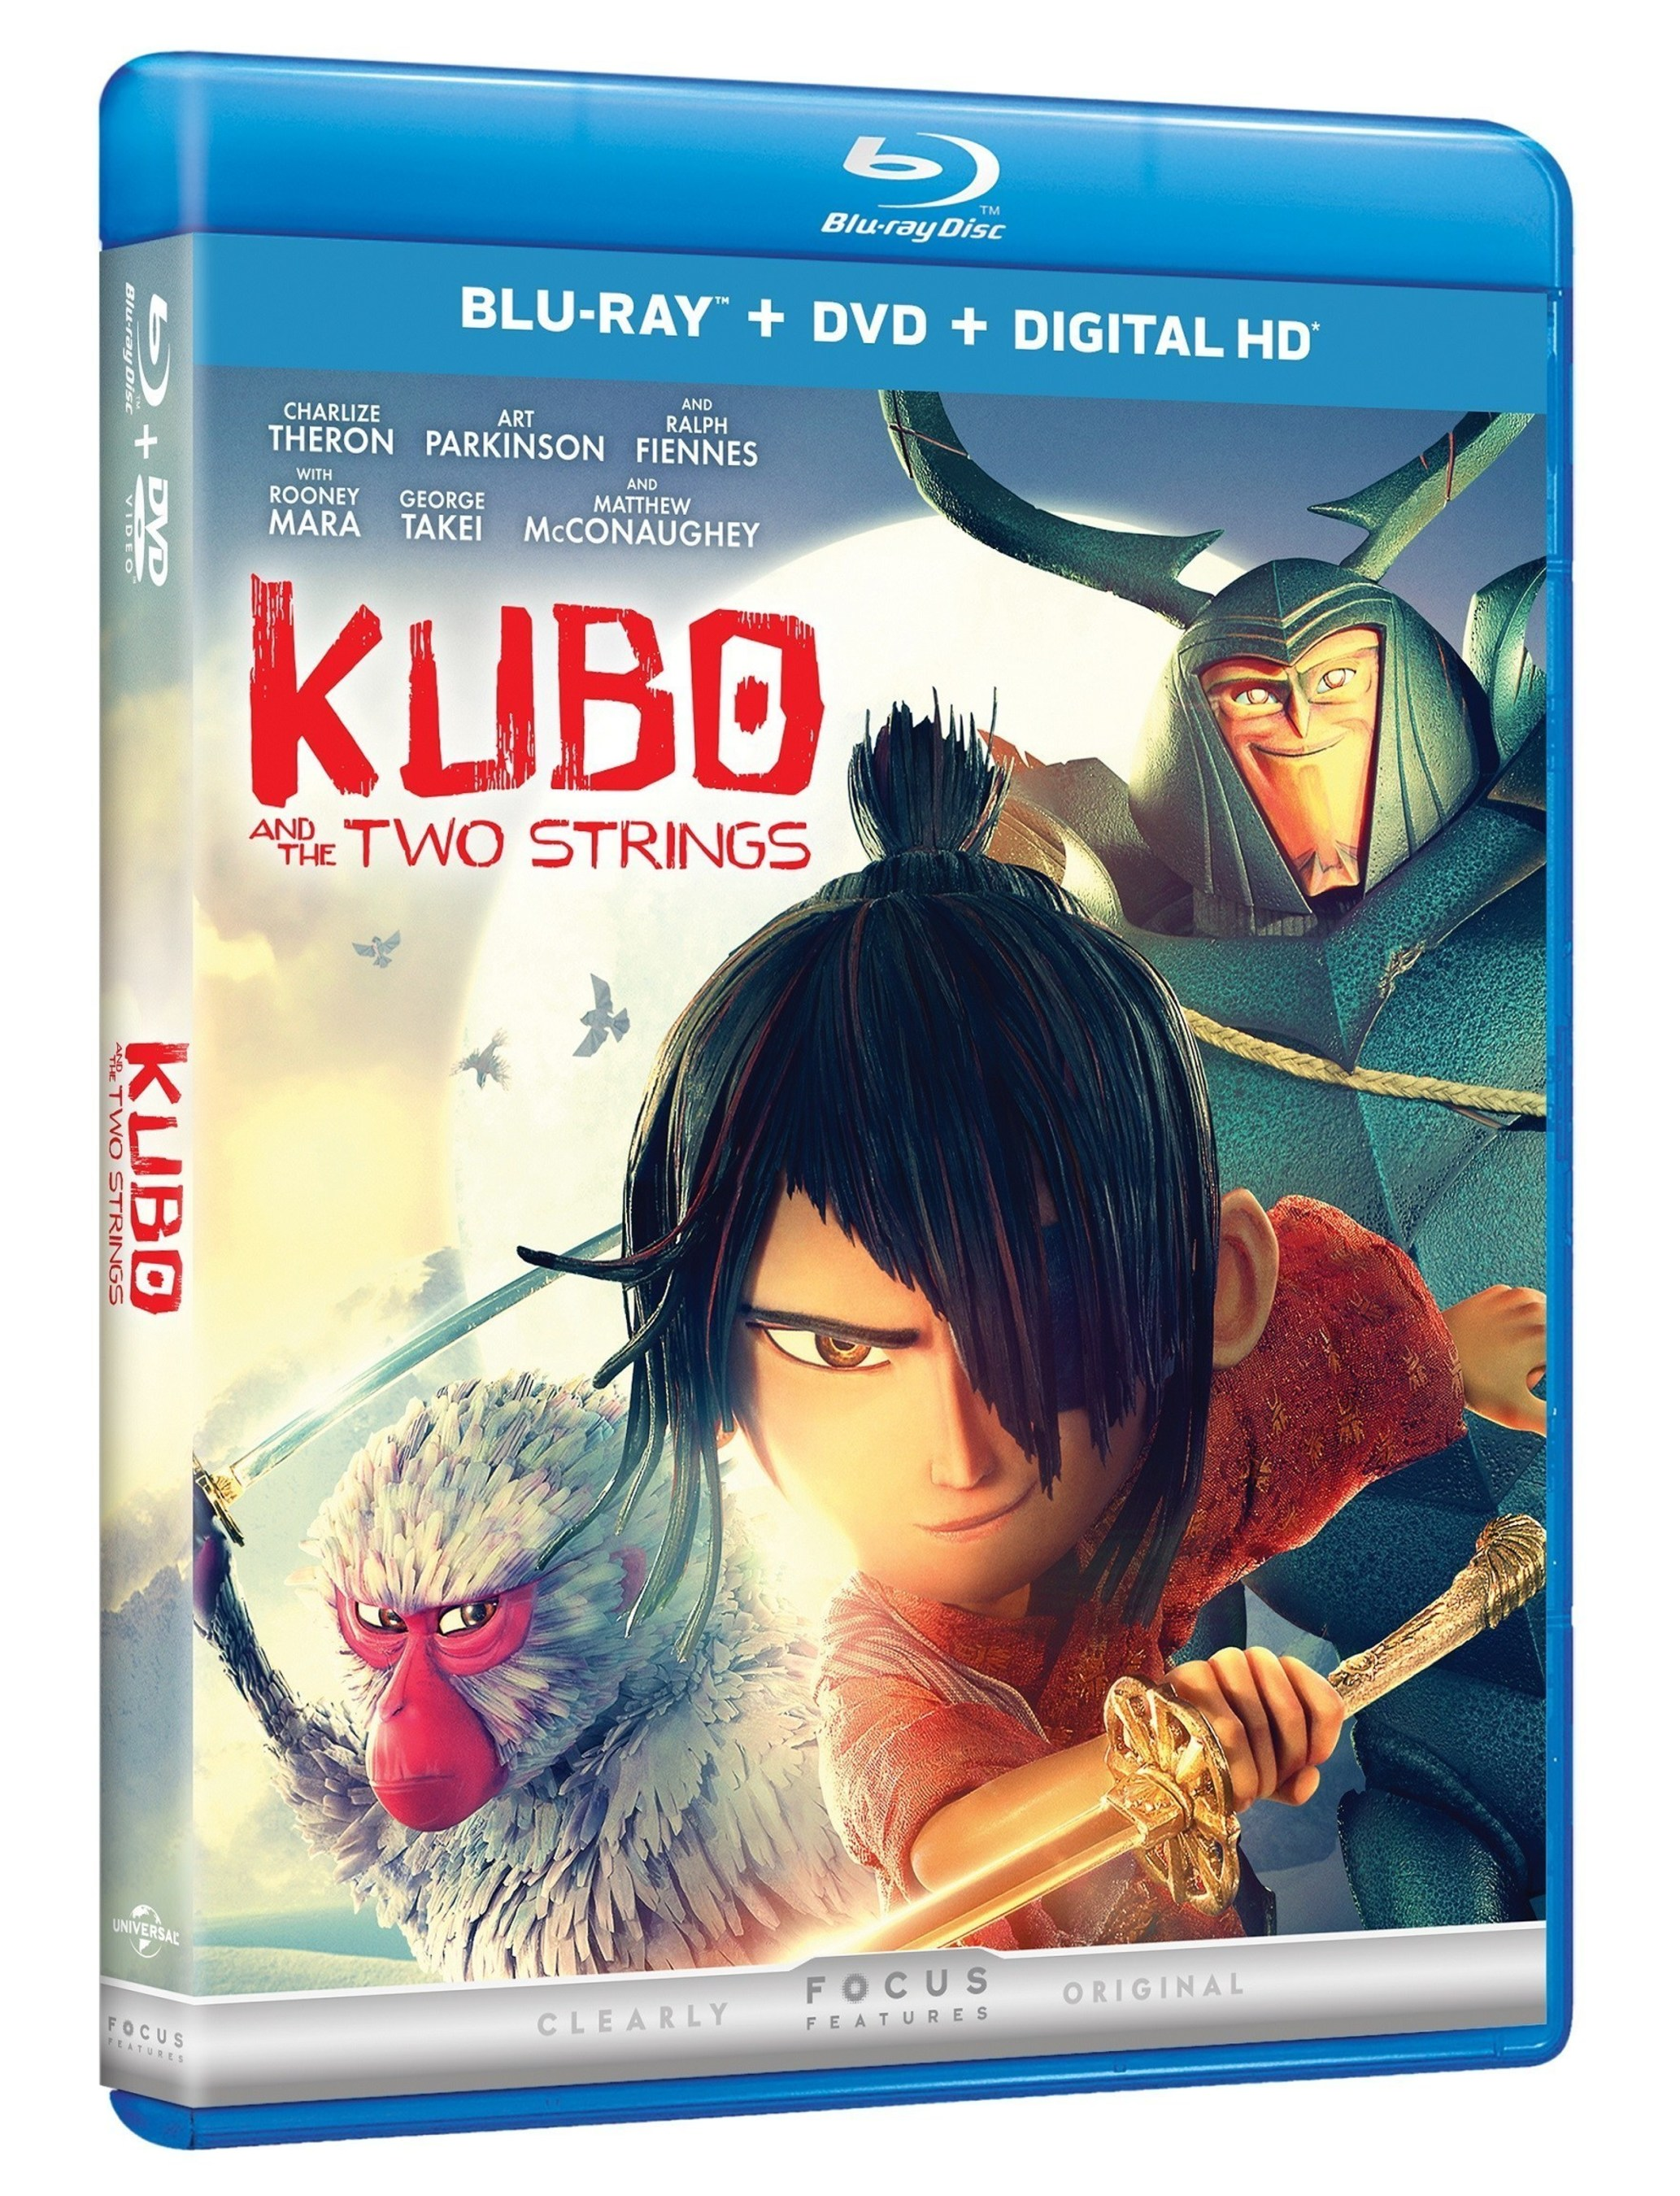 From Universal Pictures Home Entertainment: Kubo And The Two Strings Available On Digital HD November 8, 2016 And On Blu-ray Combo Pack And DVD November 22, 2016